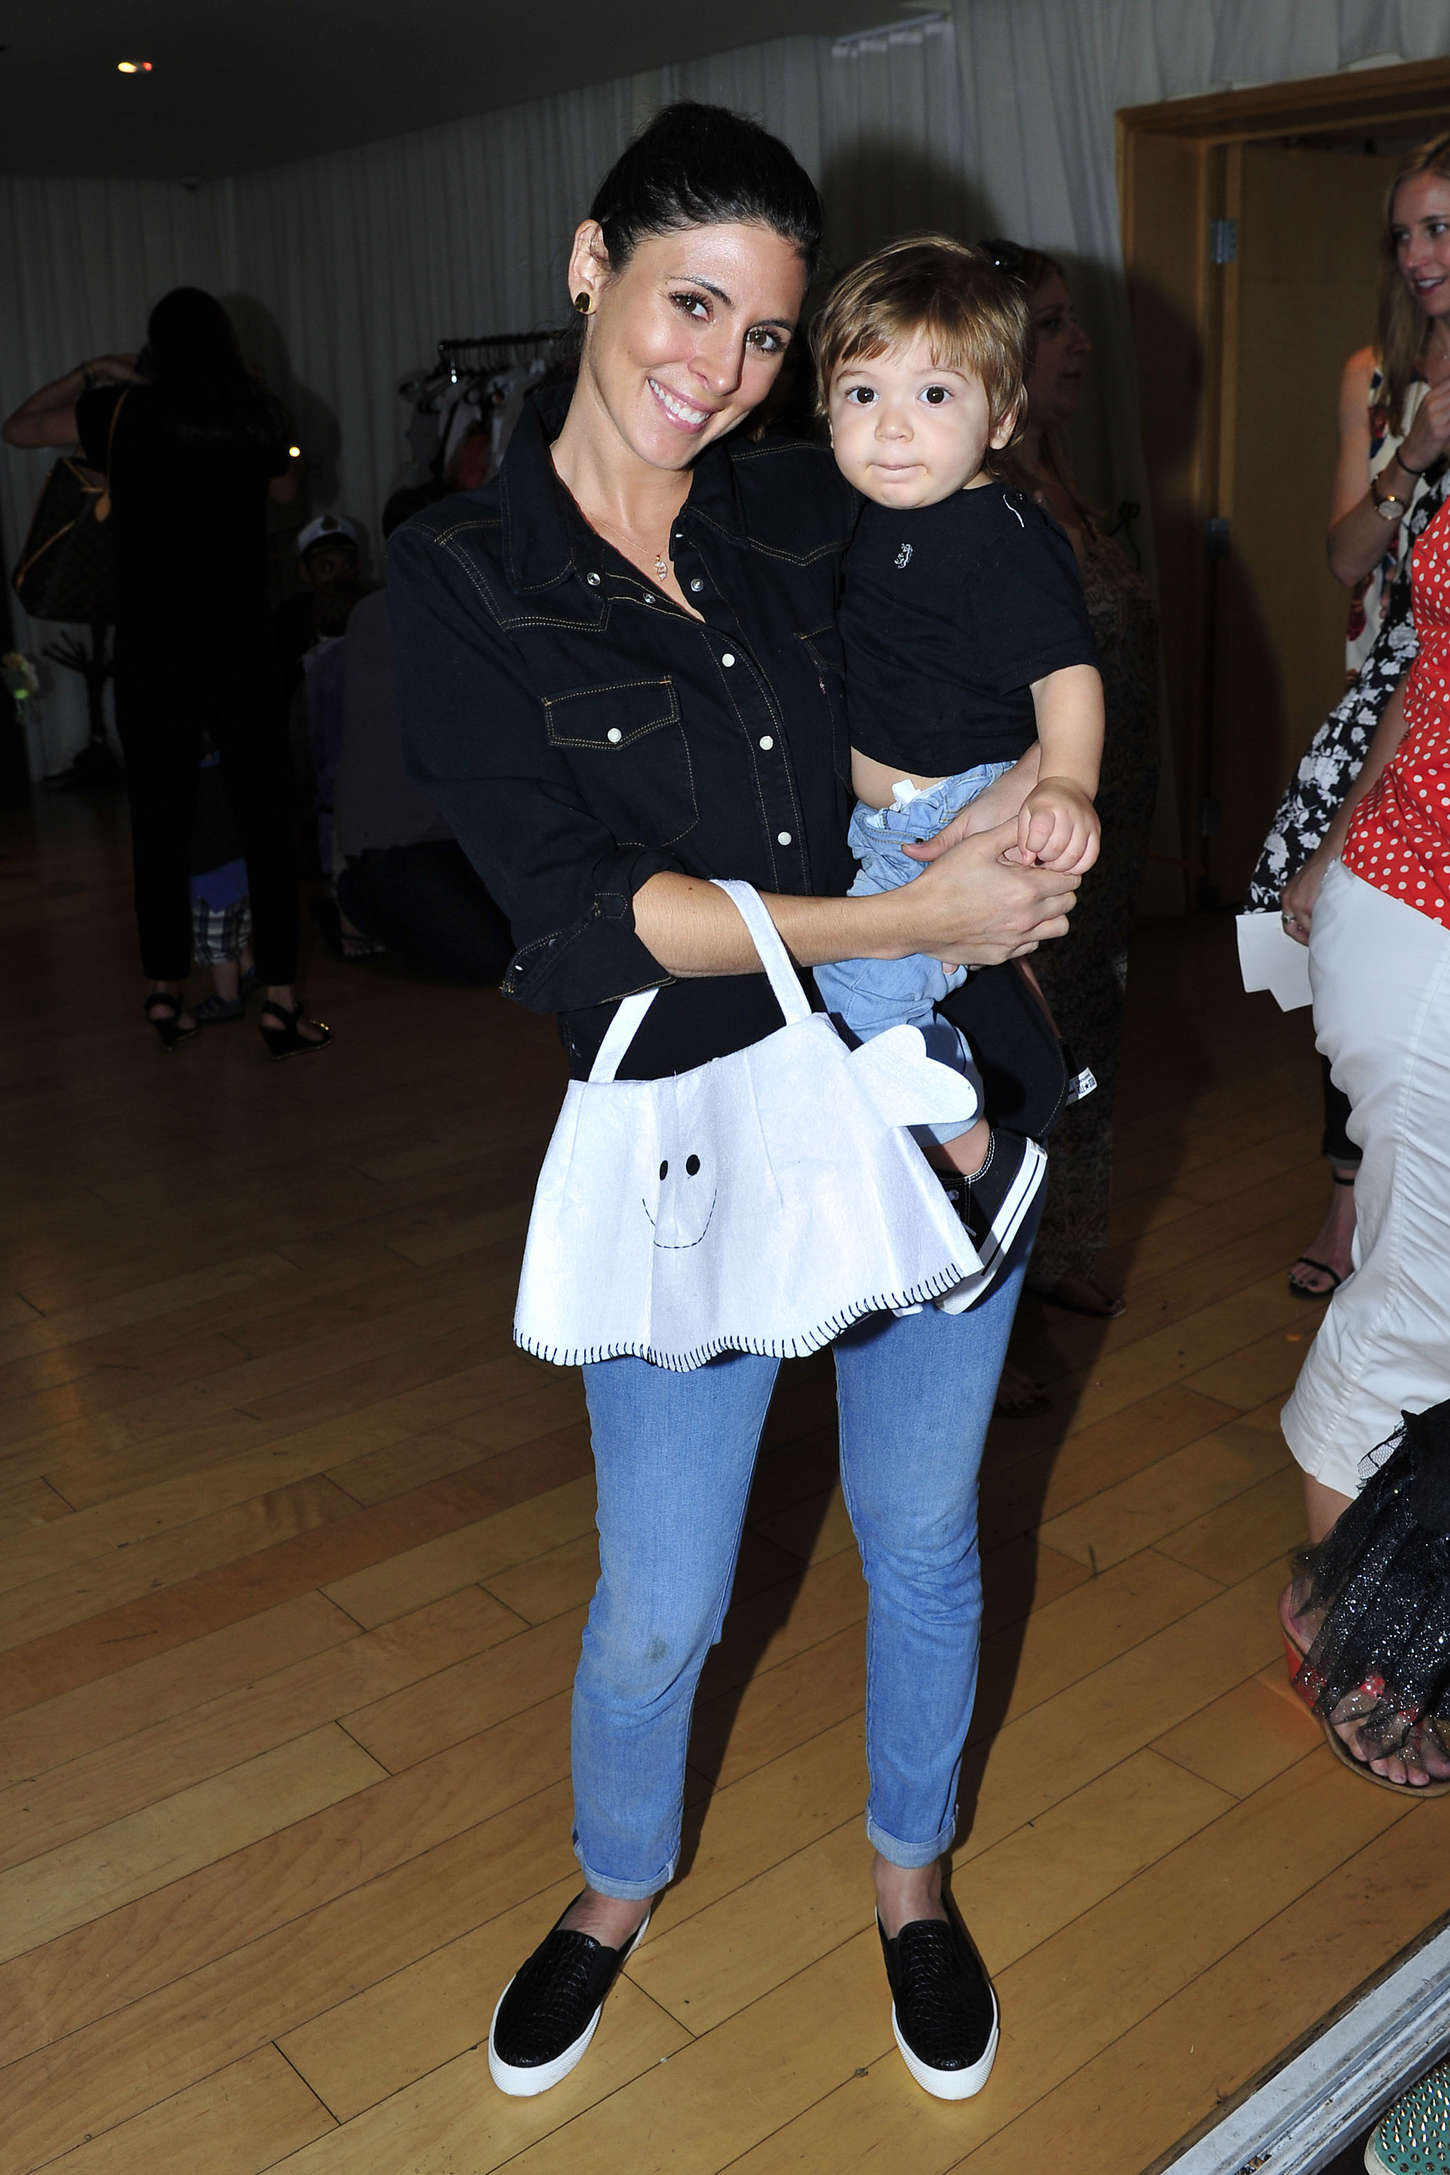 Jamie-Lynn Sigler Pottery Barn Kids Celebrates Halloween in Los Angeles